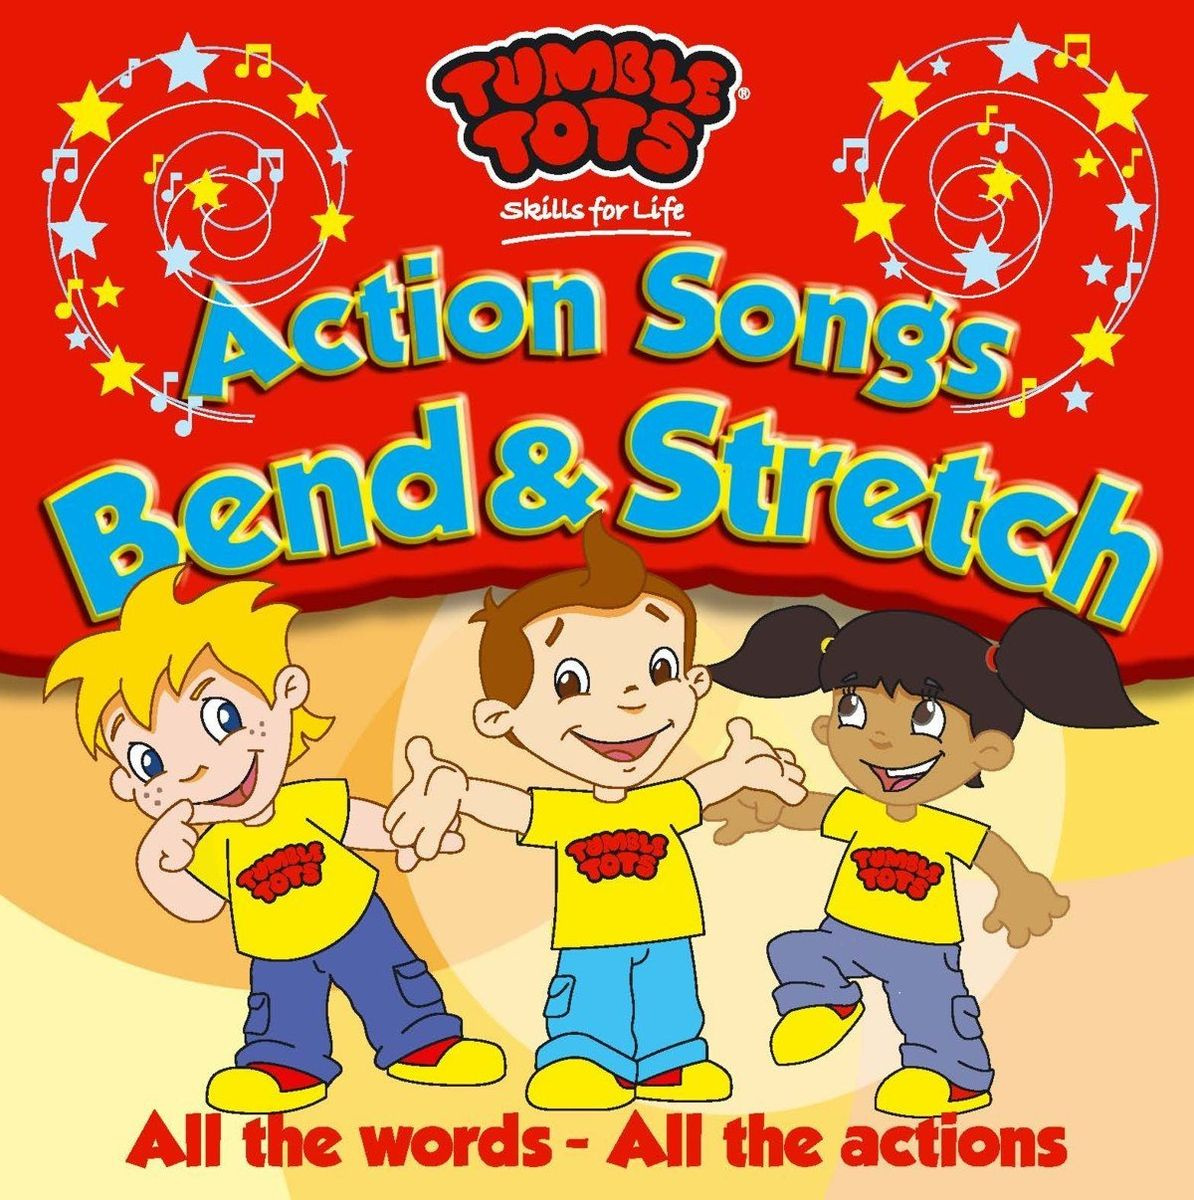 Tumble Tots. Tumble Tots - Action: Bend & Stretch #1